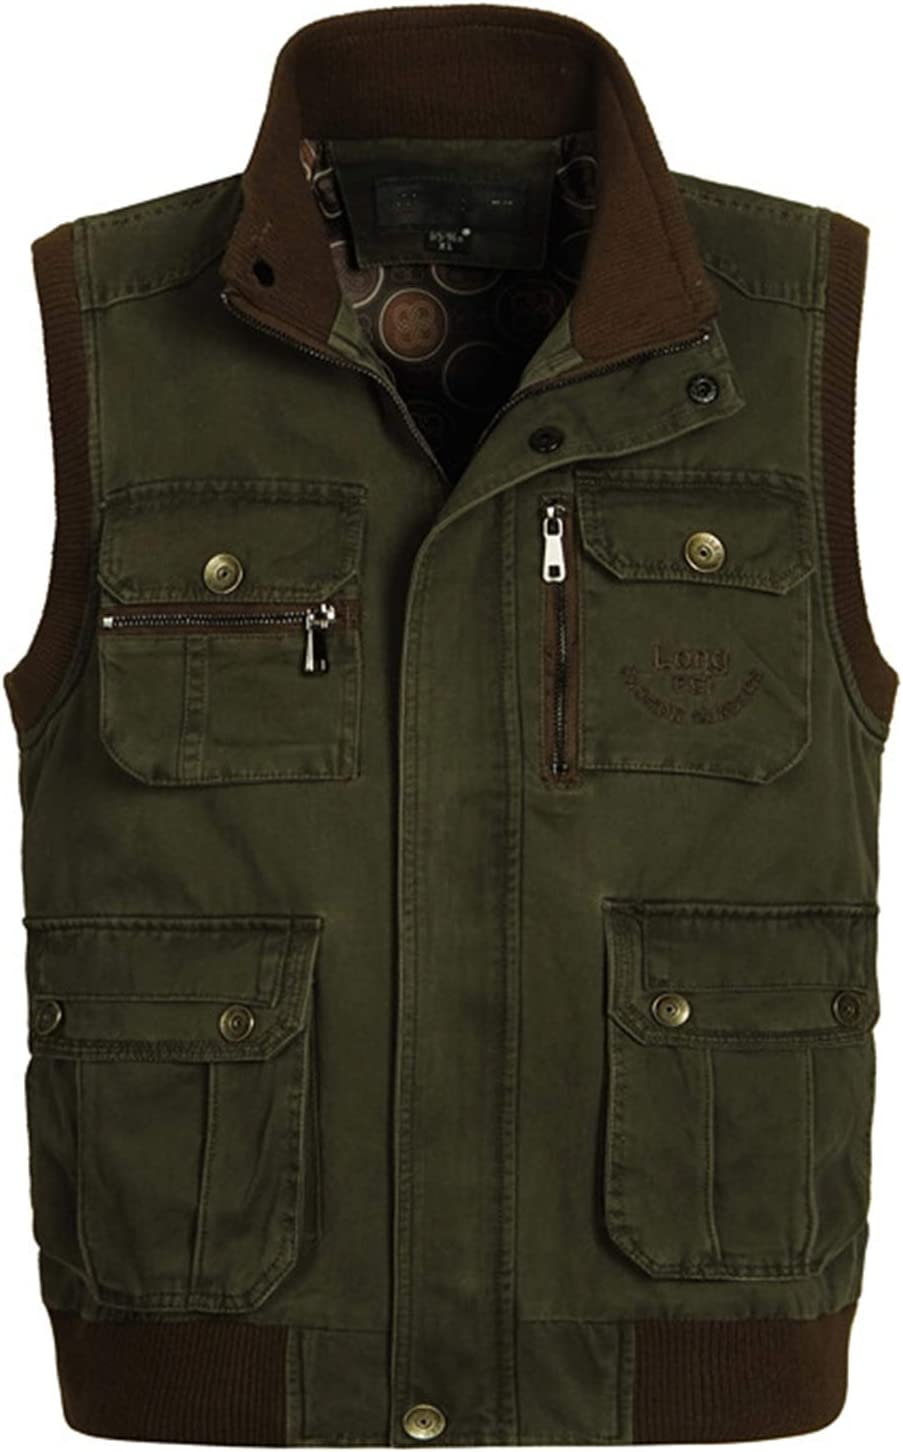 Cotton Outdoor Vests,Middle-Aged and Elderly Men's Multi-Pocket Photography Vest,Loose Tank Tops Fishing Waistcoat,Army Green,XL